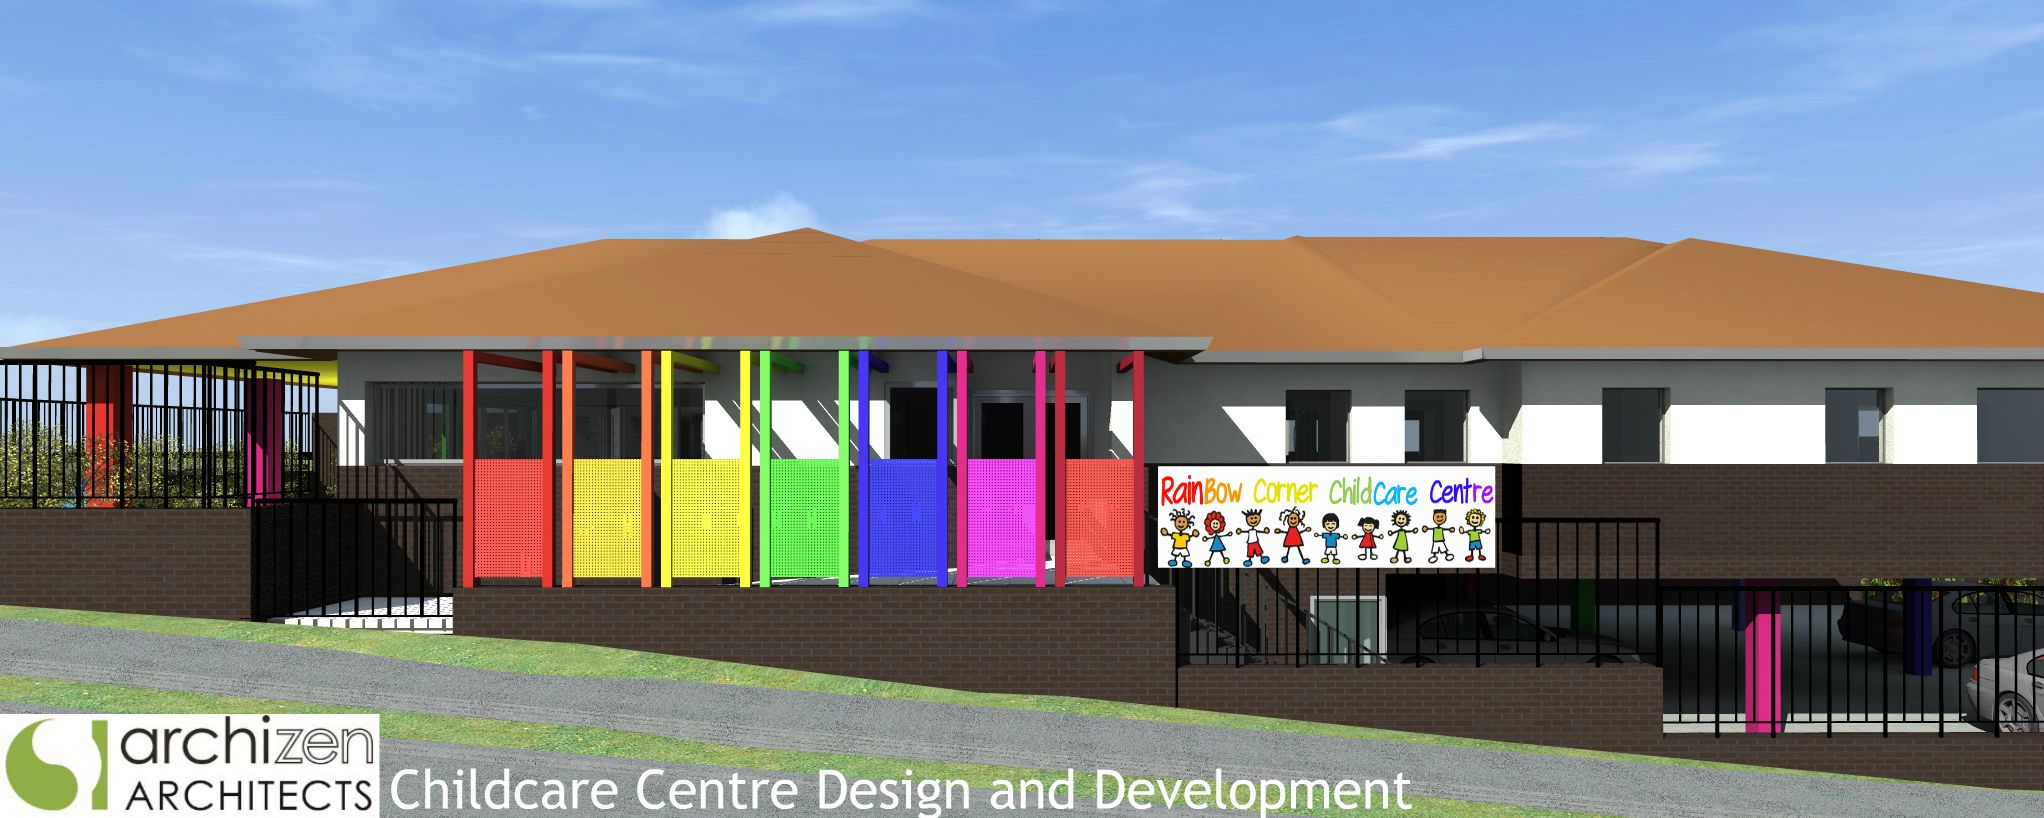 Mortdale Childcare Architectural Design Preschool Sydney Archizen Architects Hurstville Council Campbelltown Camden Wollondilly Blacktown Rouse Hill Merrylands